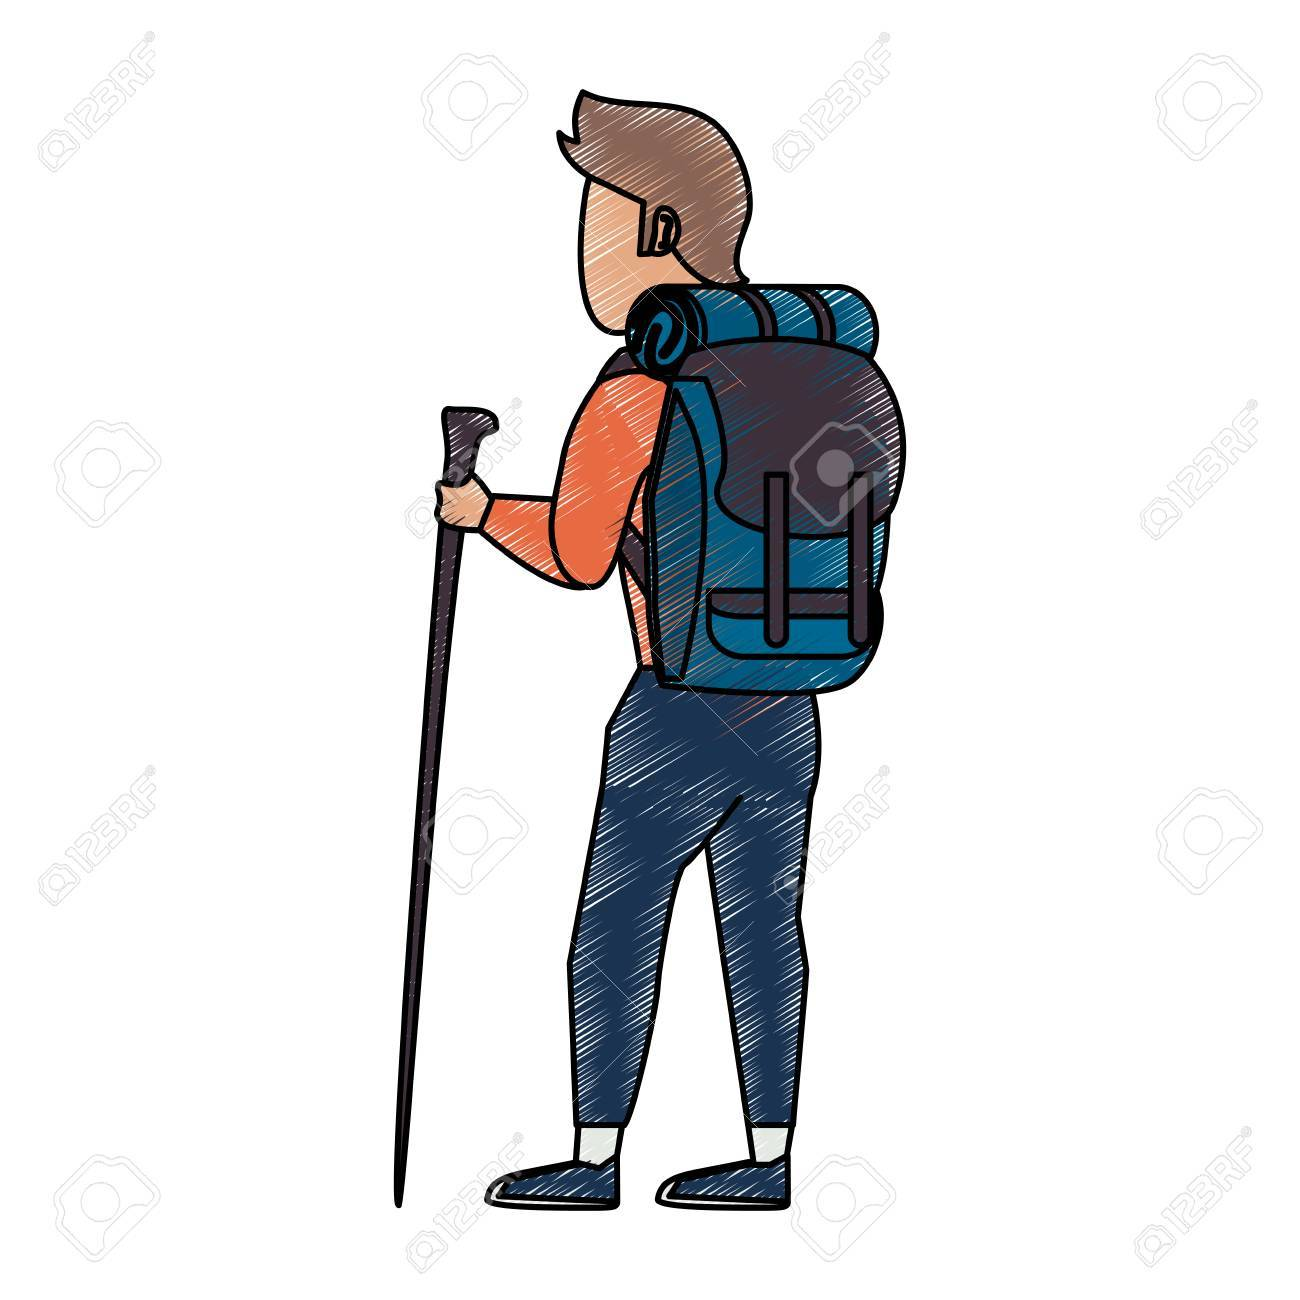 Colorful backpacker with trekking pole doodle over white background vector  illustration Stock Vector - 84162188 0d95a1cb2e